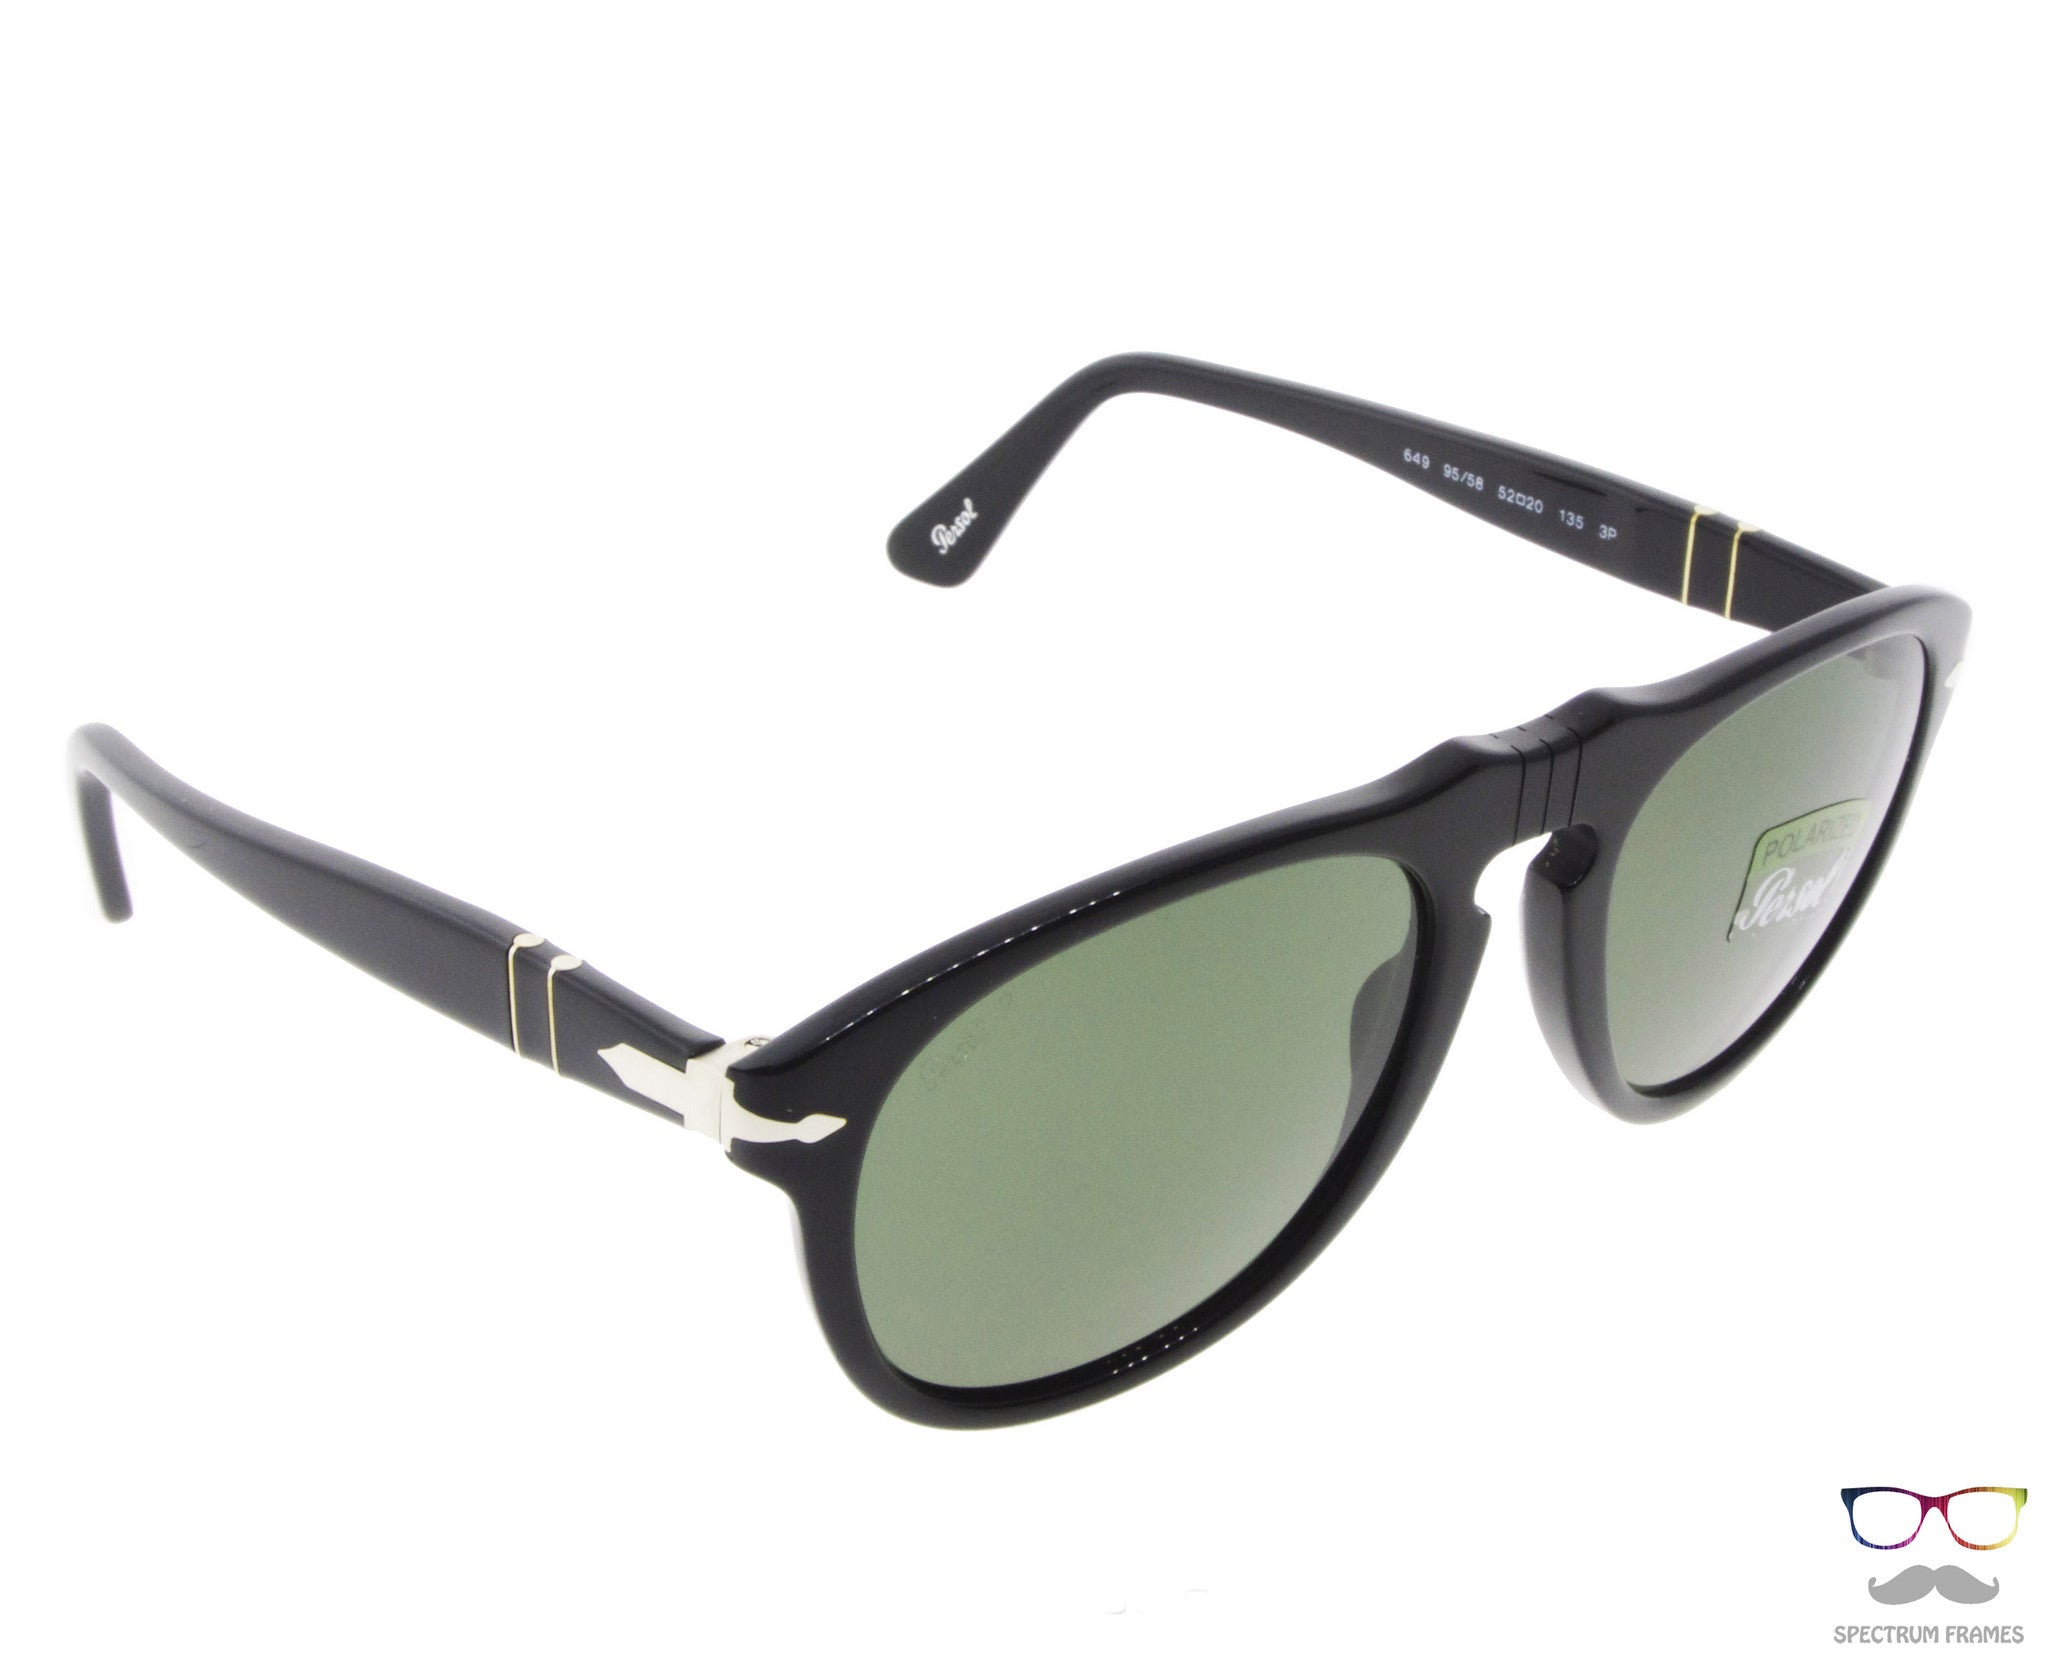 f27fc068db ... Persol Sunglasses 0649 95 58 Black with Green Polarized Lenses Size 52  ...